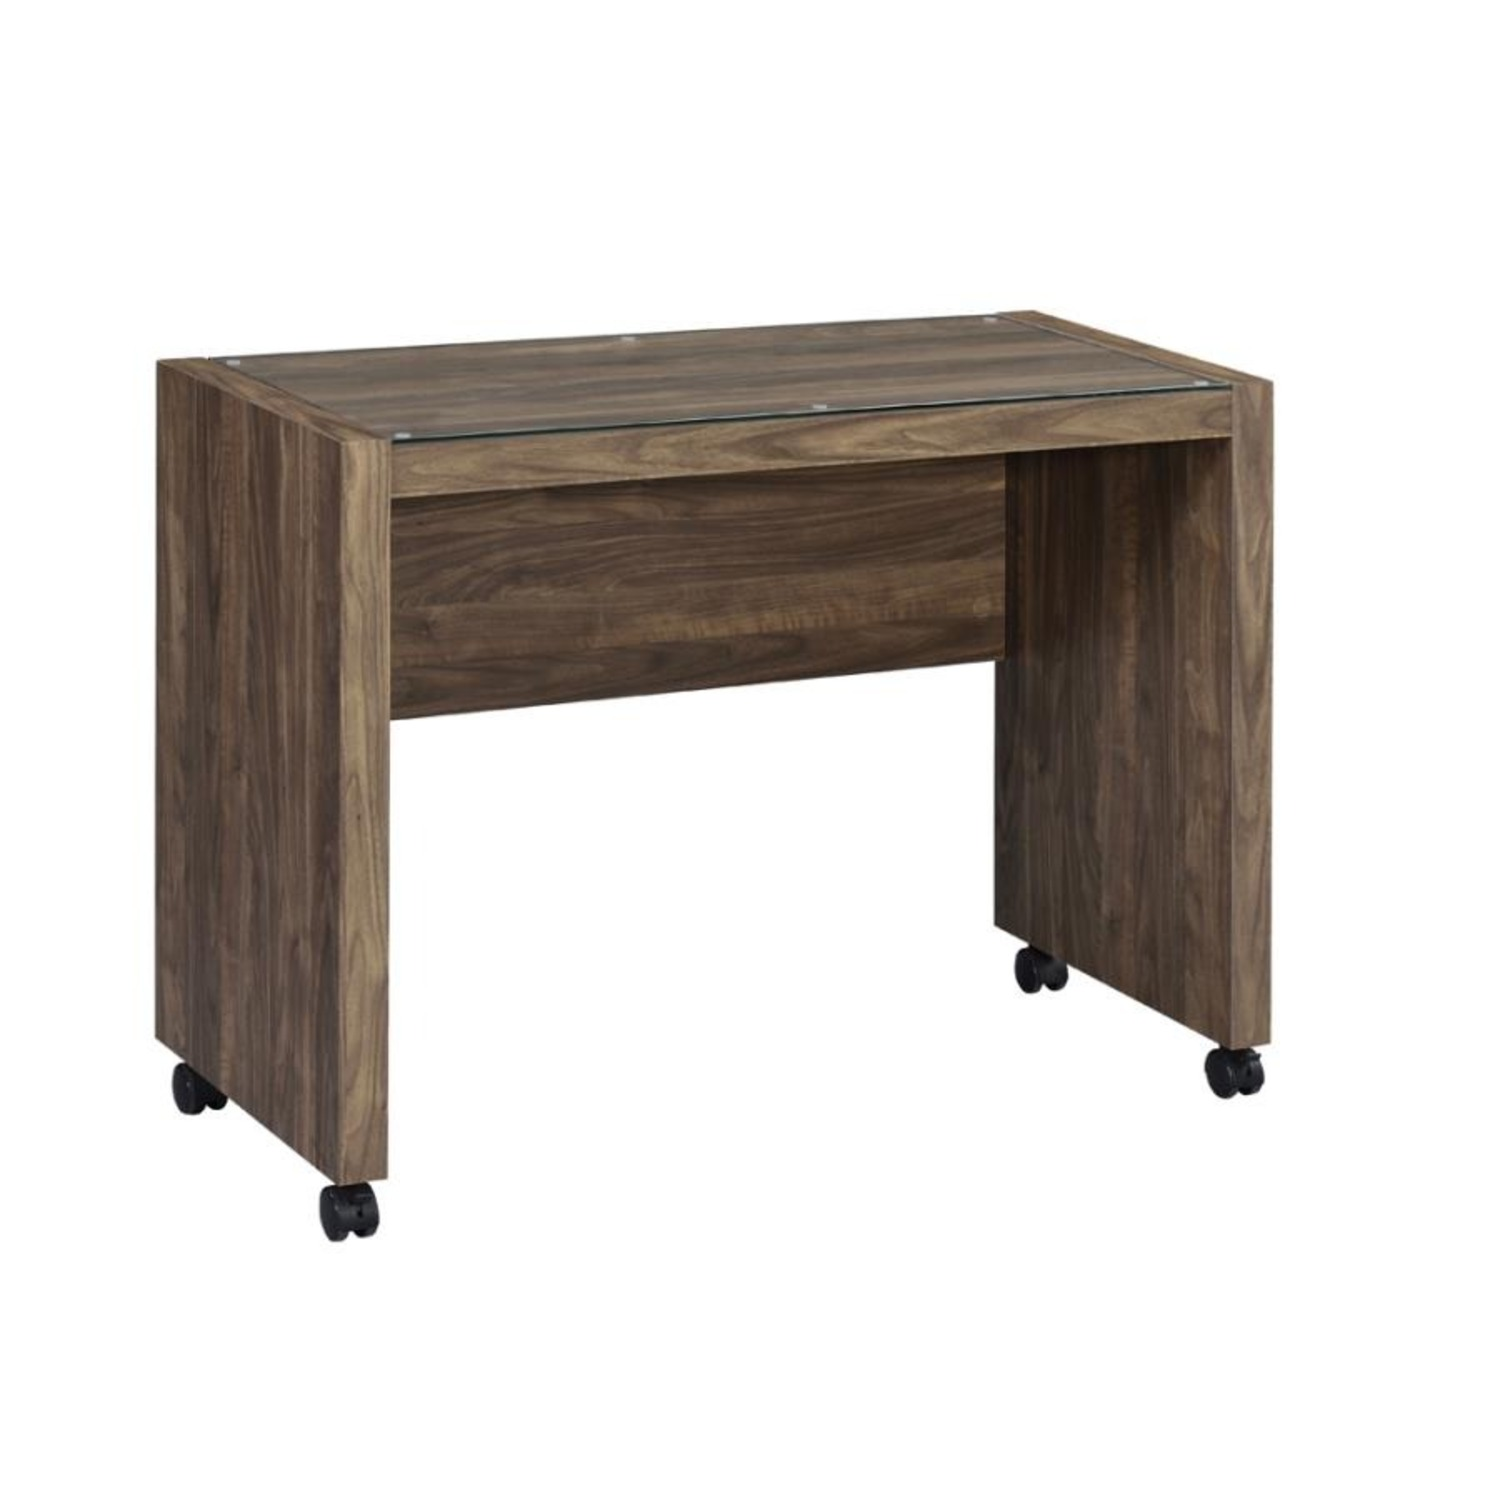 Mobile Return On Casters In Aged Walnut Finish  - image-0